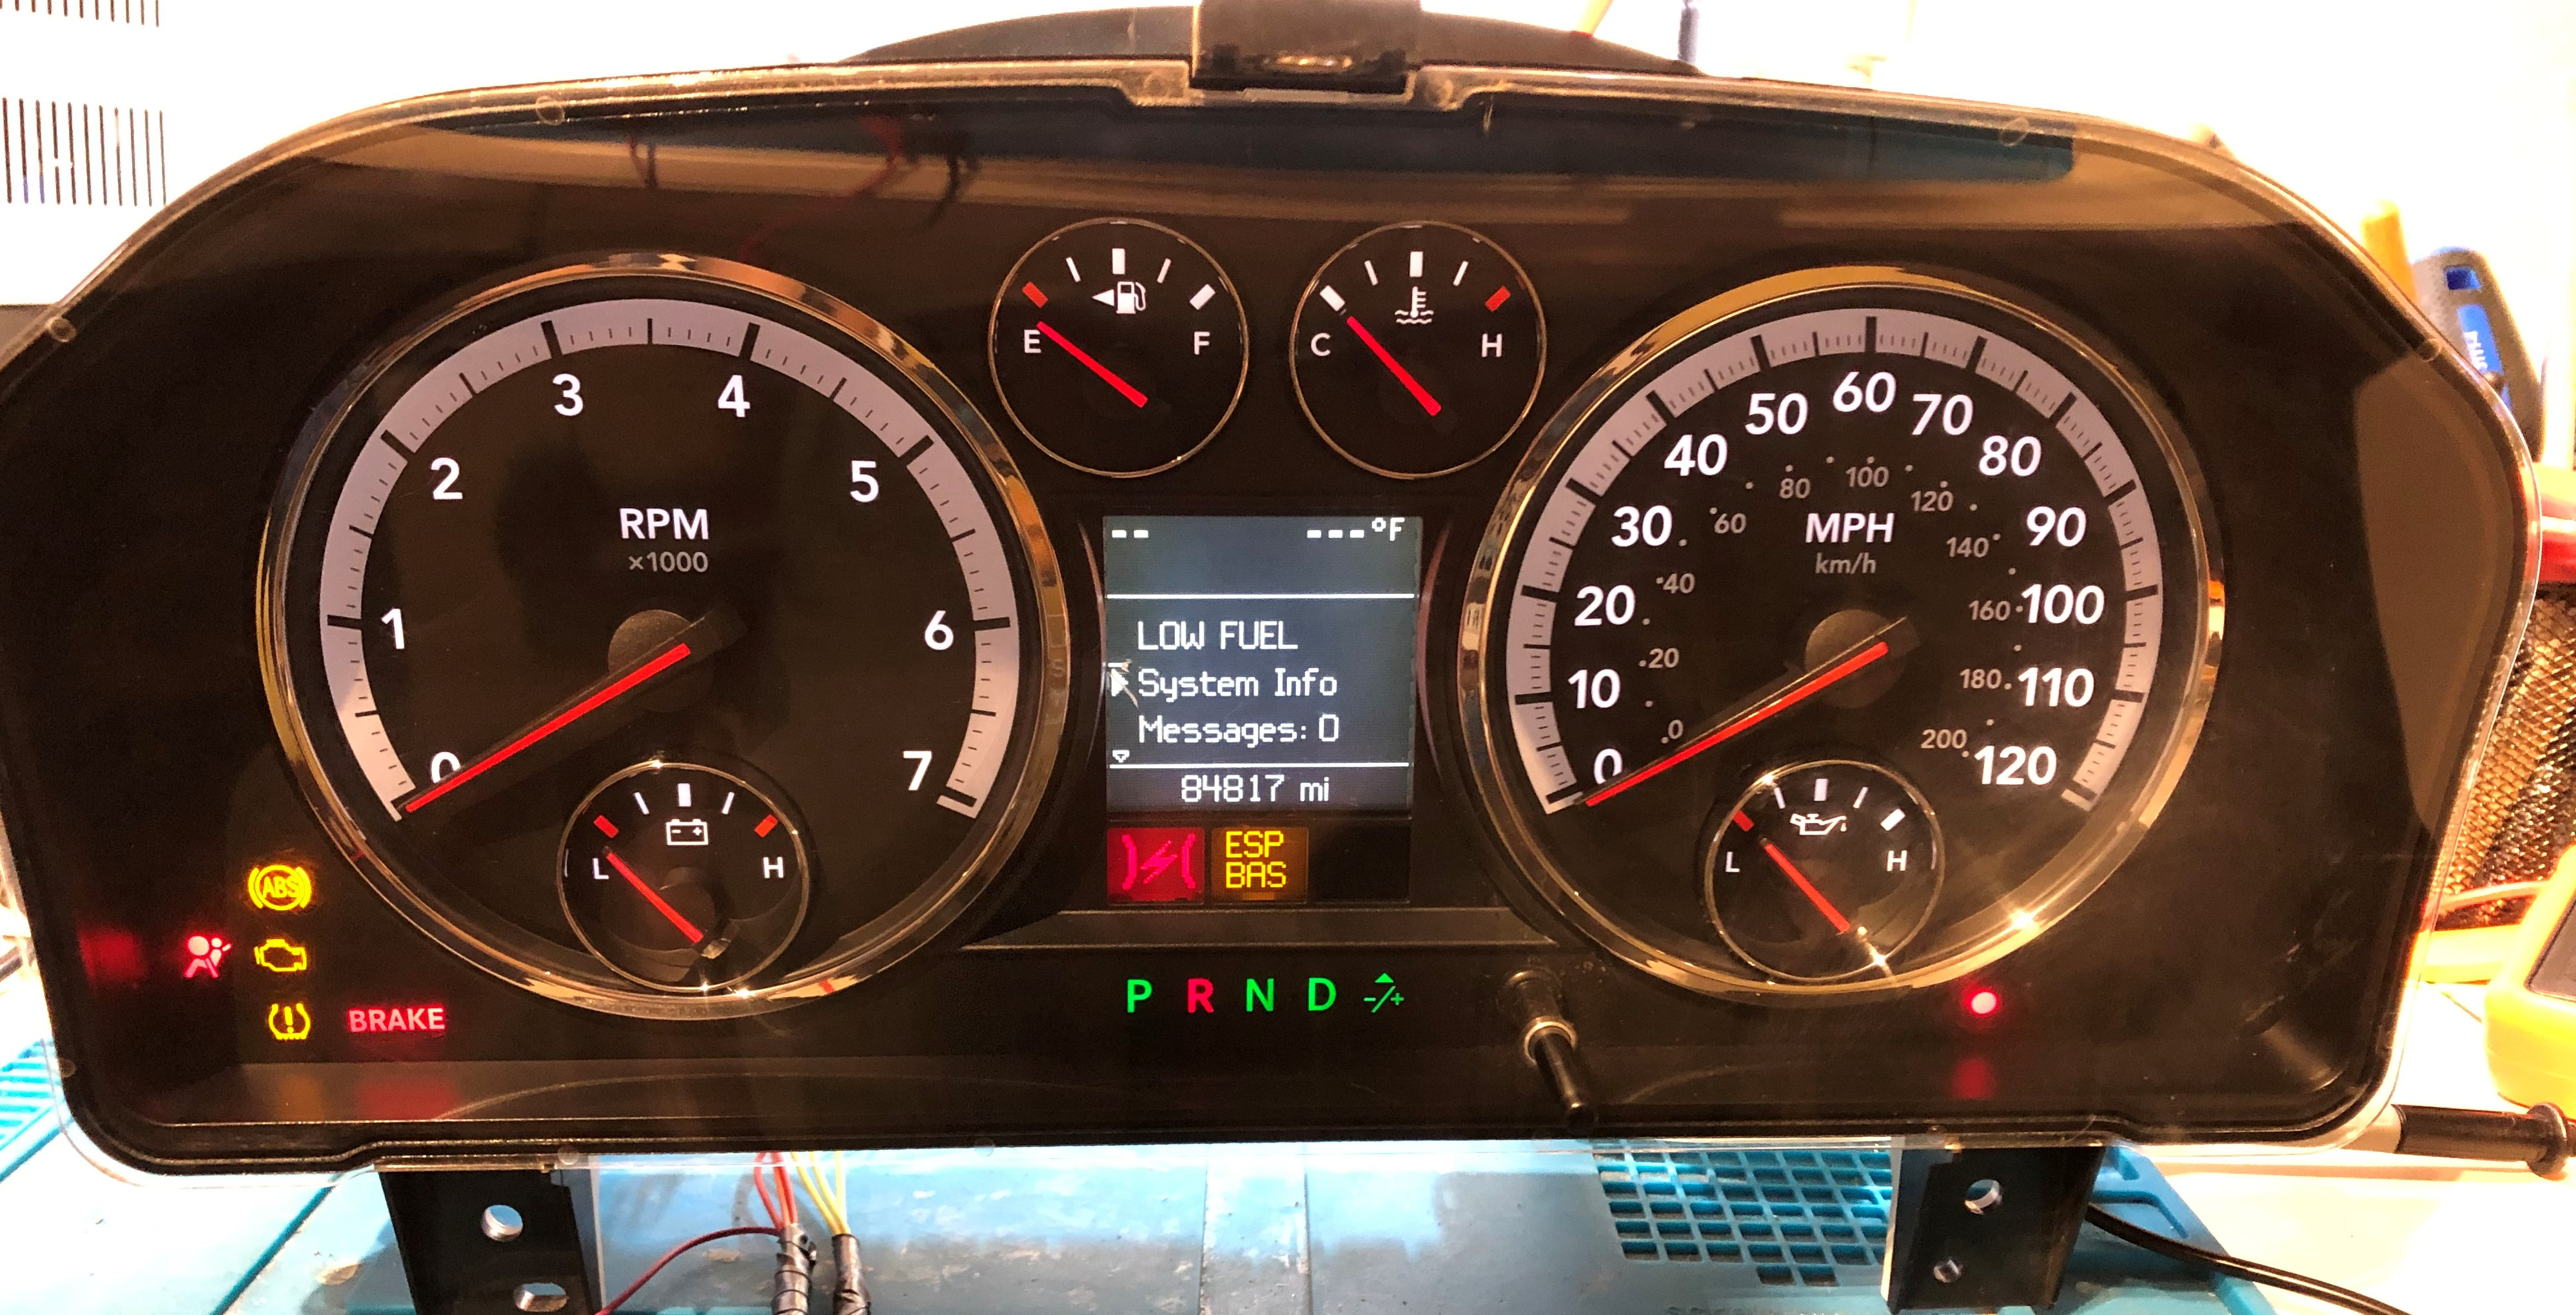 2009 DODGE RAM 1500 USED DASHBOARD INSTRUMENT CLUSTER FOR SALE (MPH)